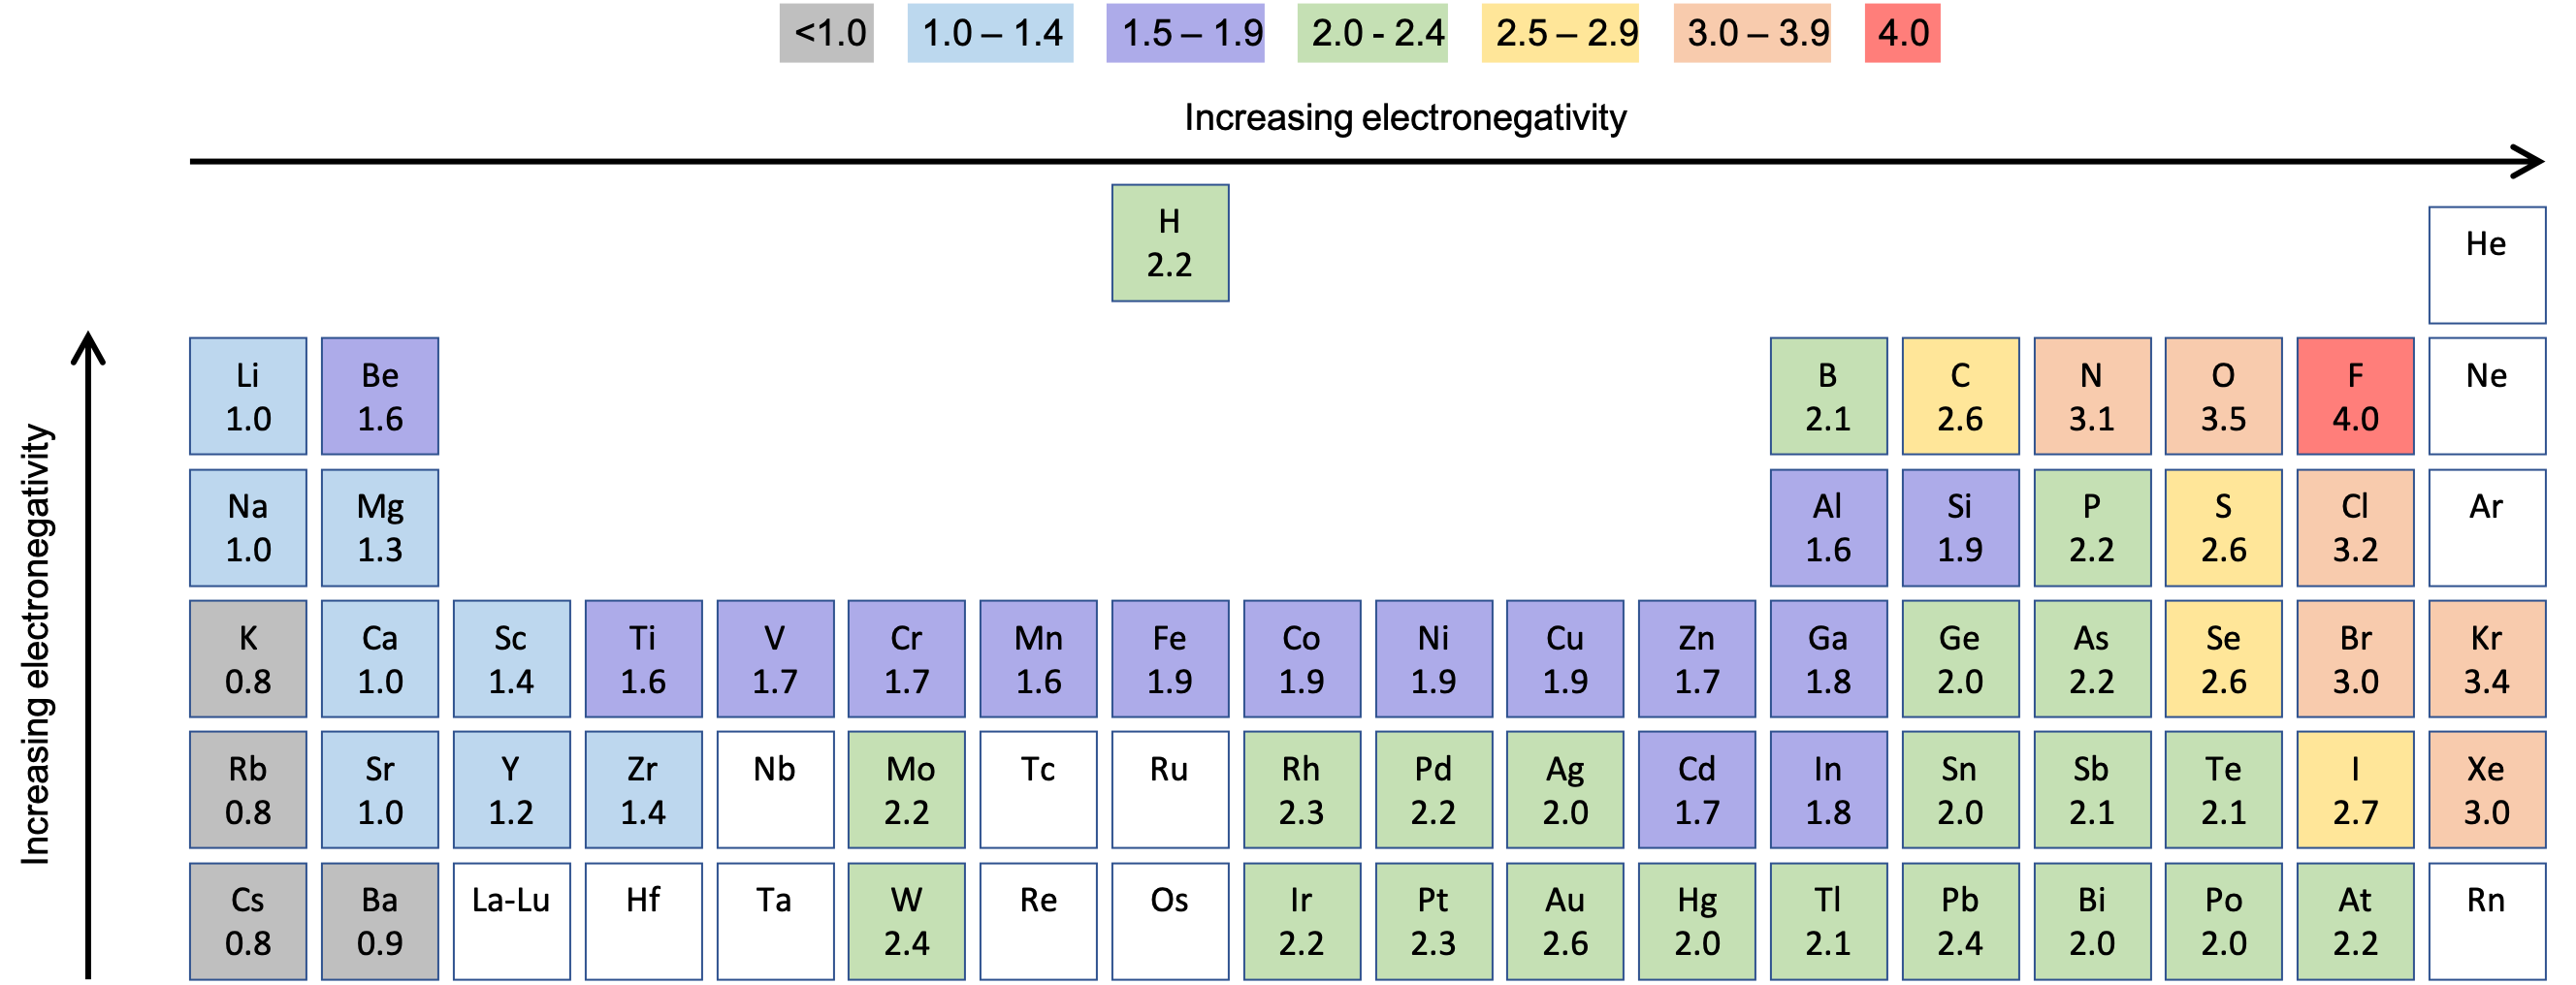 "Part of the periodic table is shown. An upward-facing arrow is drawn to the left of the table and labeled, ""Increasing electronegativity,"" while a right-facing arrow is drawn above the table and labeled ""Increasing electronegativity."" The electronegativity for almost all the elements is given according to the Pauling scale."